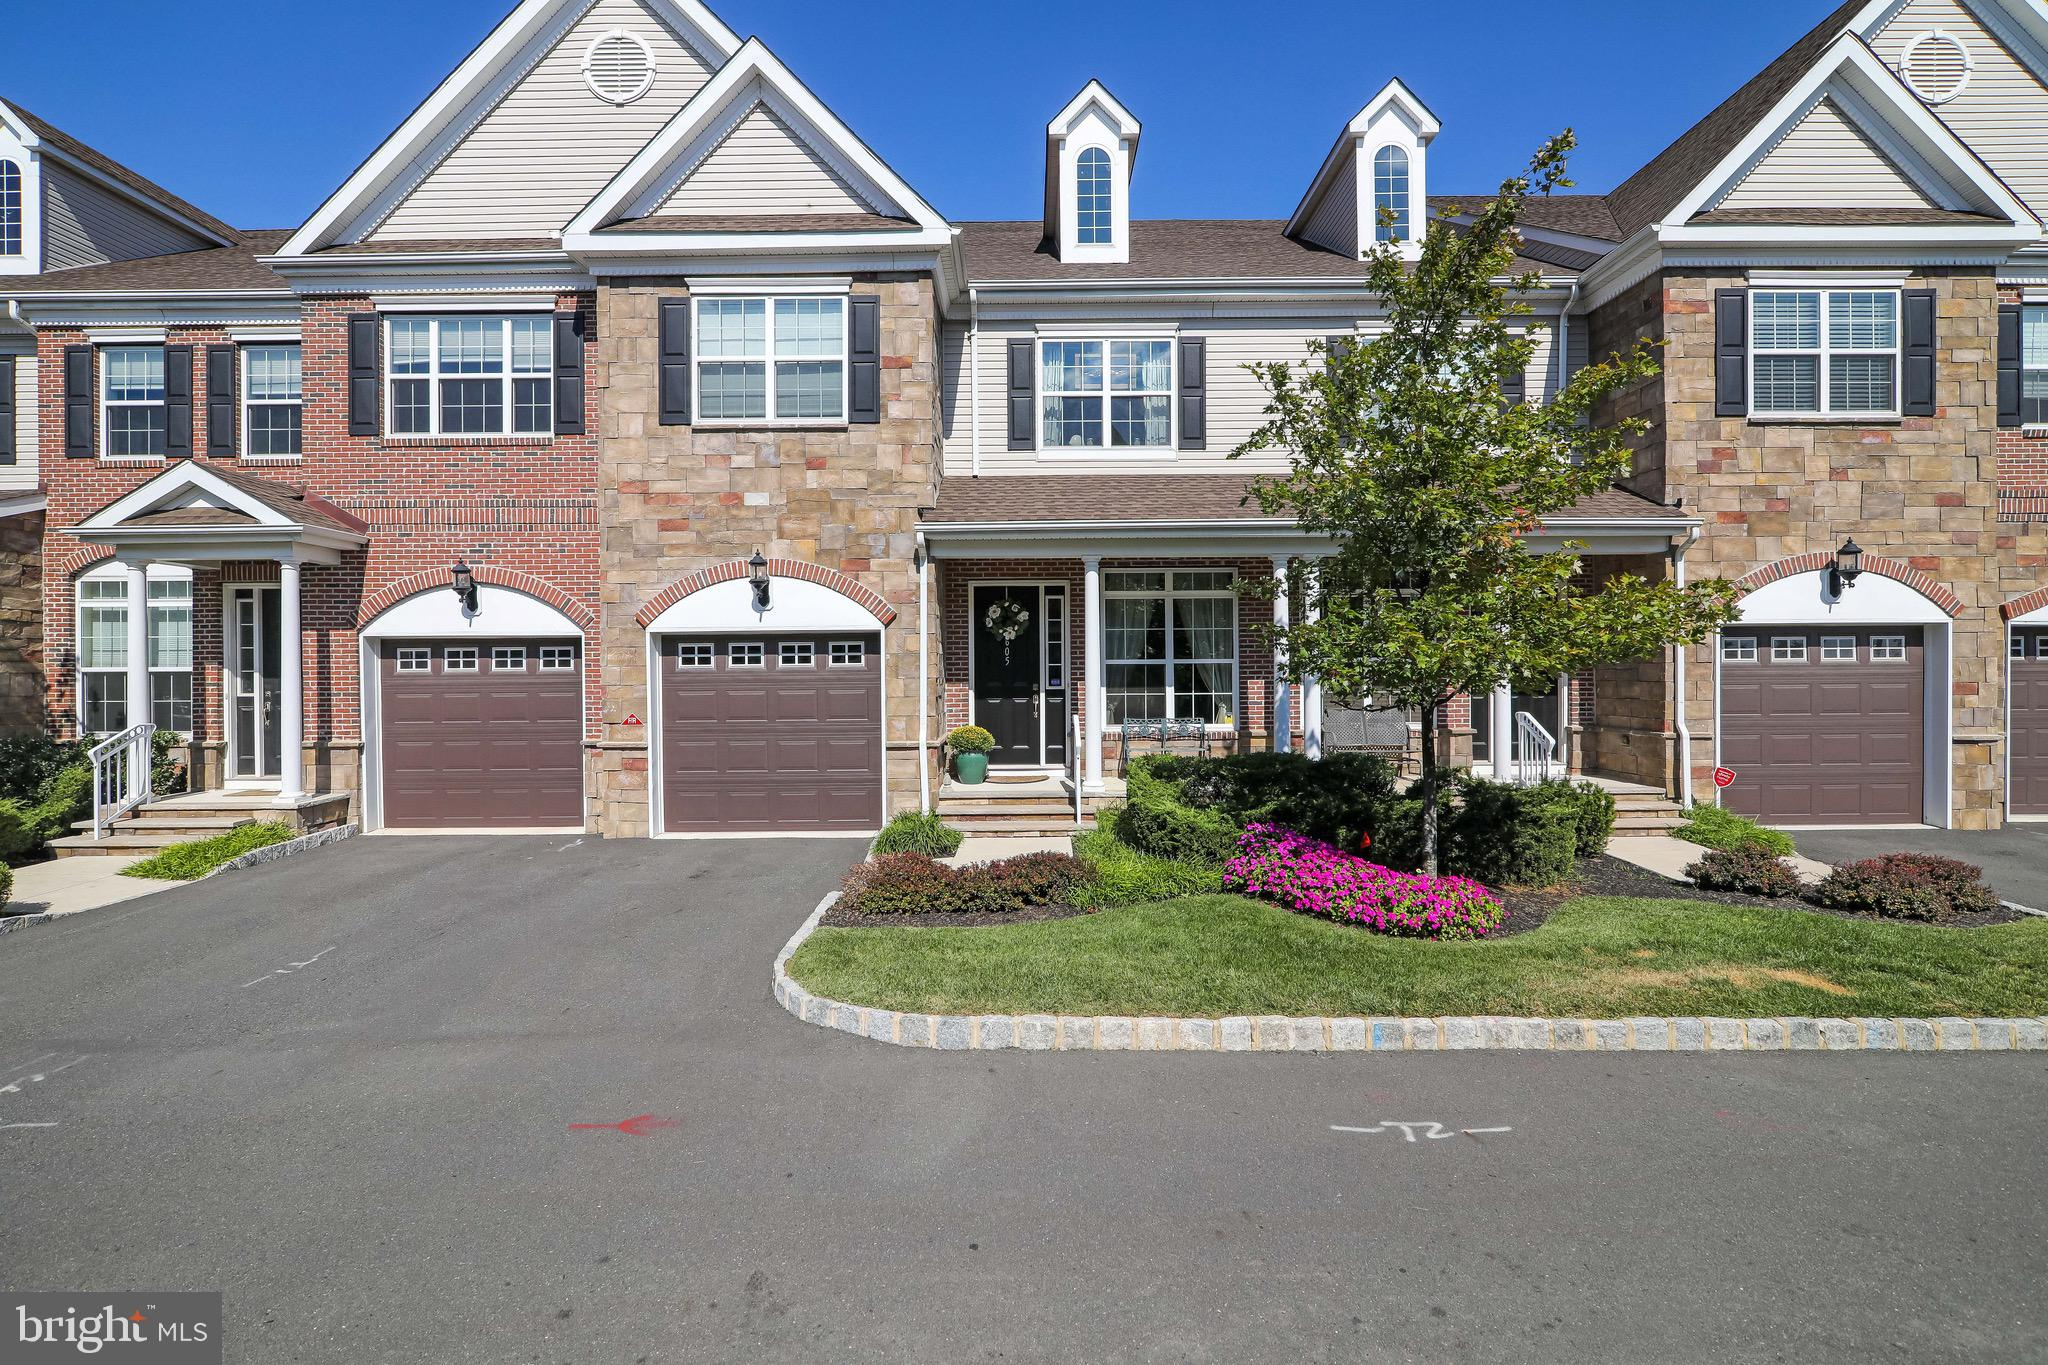 1605 YEARLING COURT, CHERRY HILL, NJ 08002